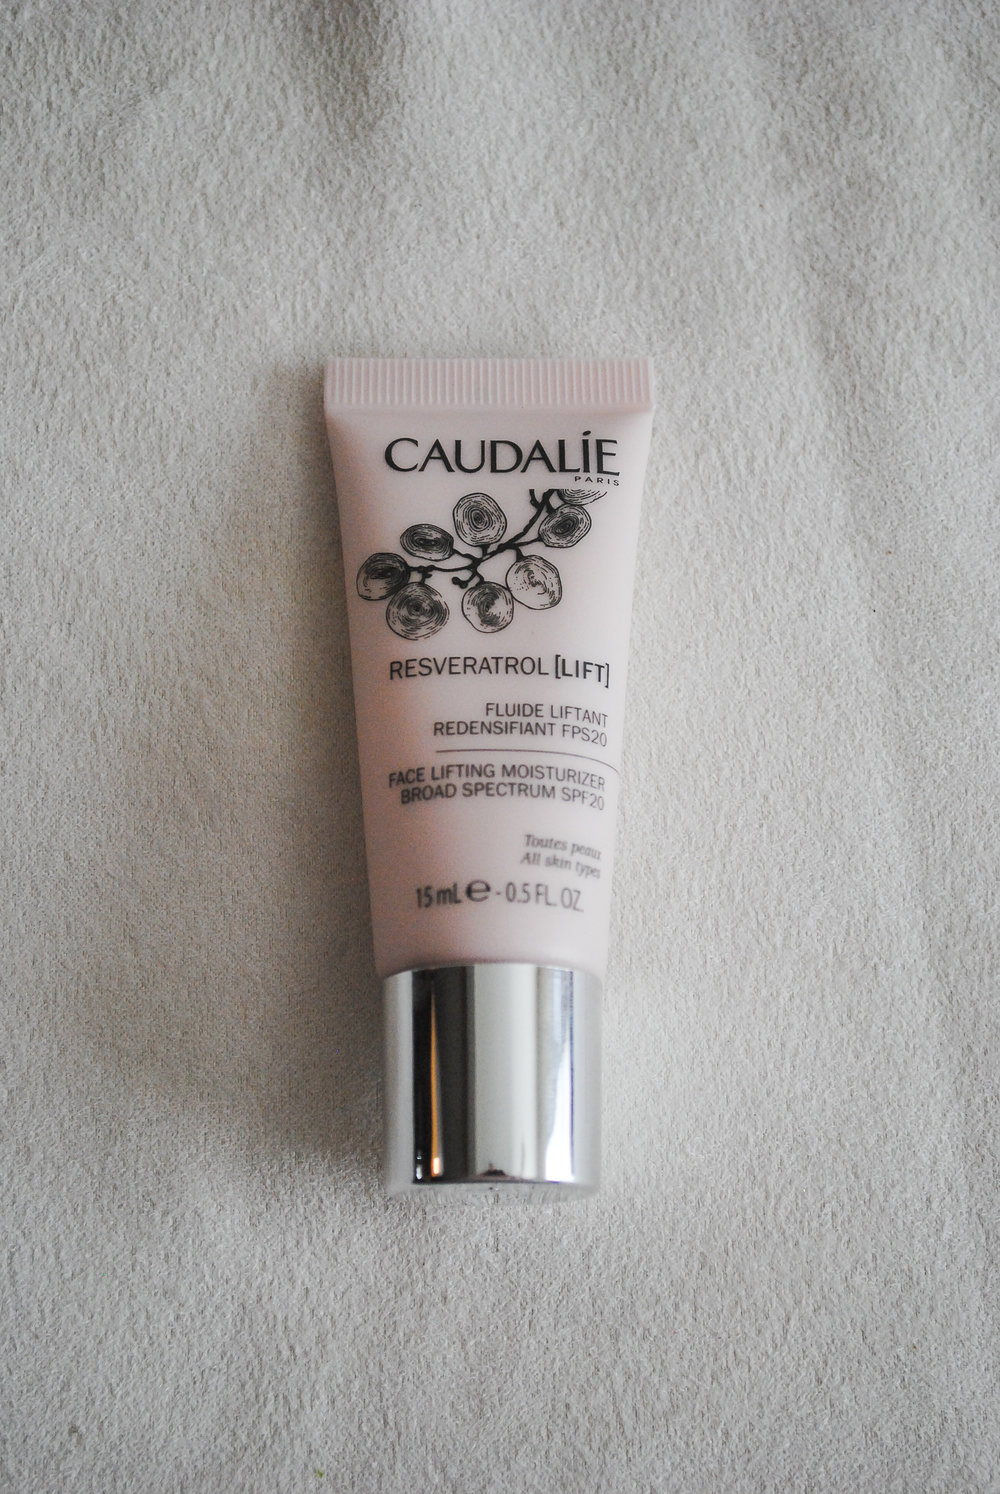 CAUDALIE- Resveratrol Lift Face Lifting Moisturizer Broad Spectrum SPF 20  What it claims to do: This is anti-aging daytime moisturizer that combines resveratrol and hyaluronic acid to visibly lift, firm, and plump skin.   I have been using this moisturizer as a face primer and love it! It has everything that I want in a daytime moisturizer. I love that it has SPF in it as well as works as a face lifting cream all well giving me the perfect base for makeup. I have combination skin so I also appreciate that it doesn't leave my skin feeling oily or greasy.